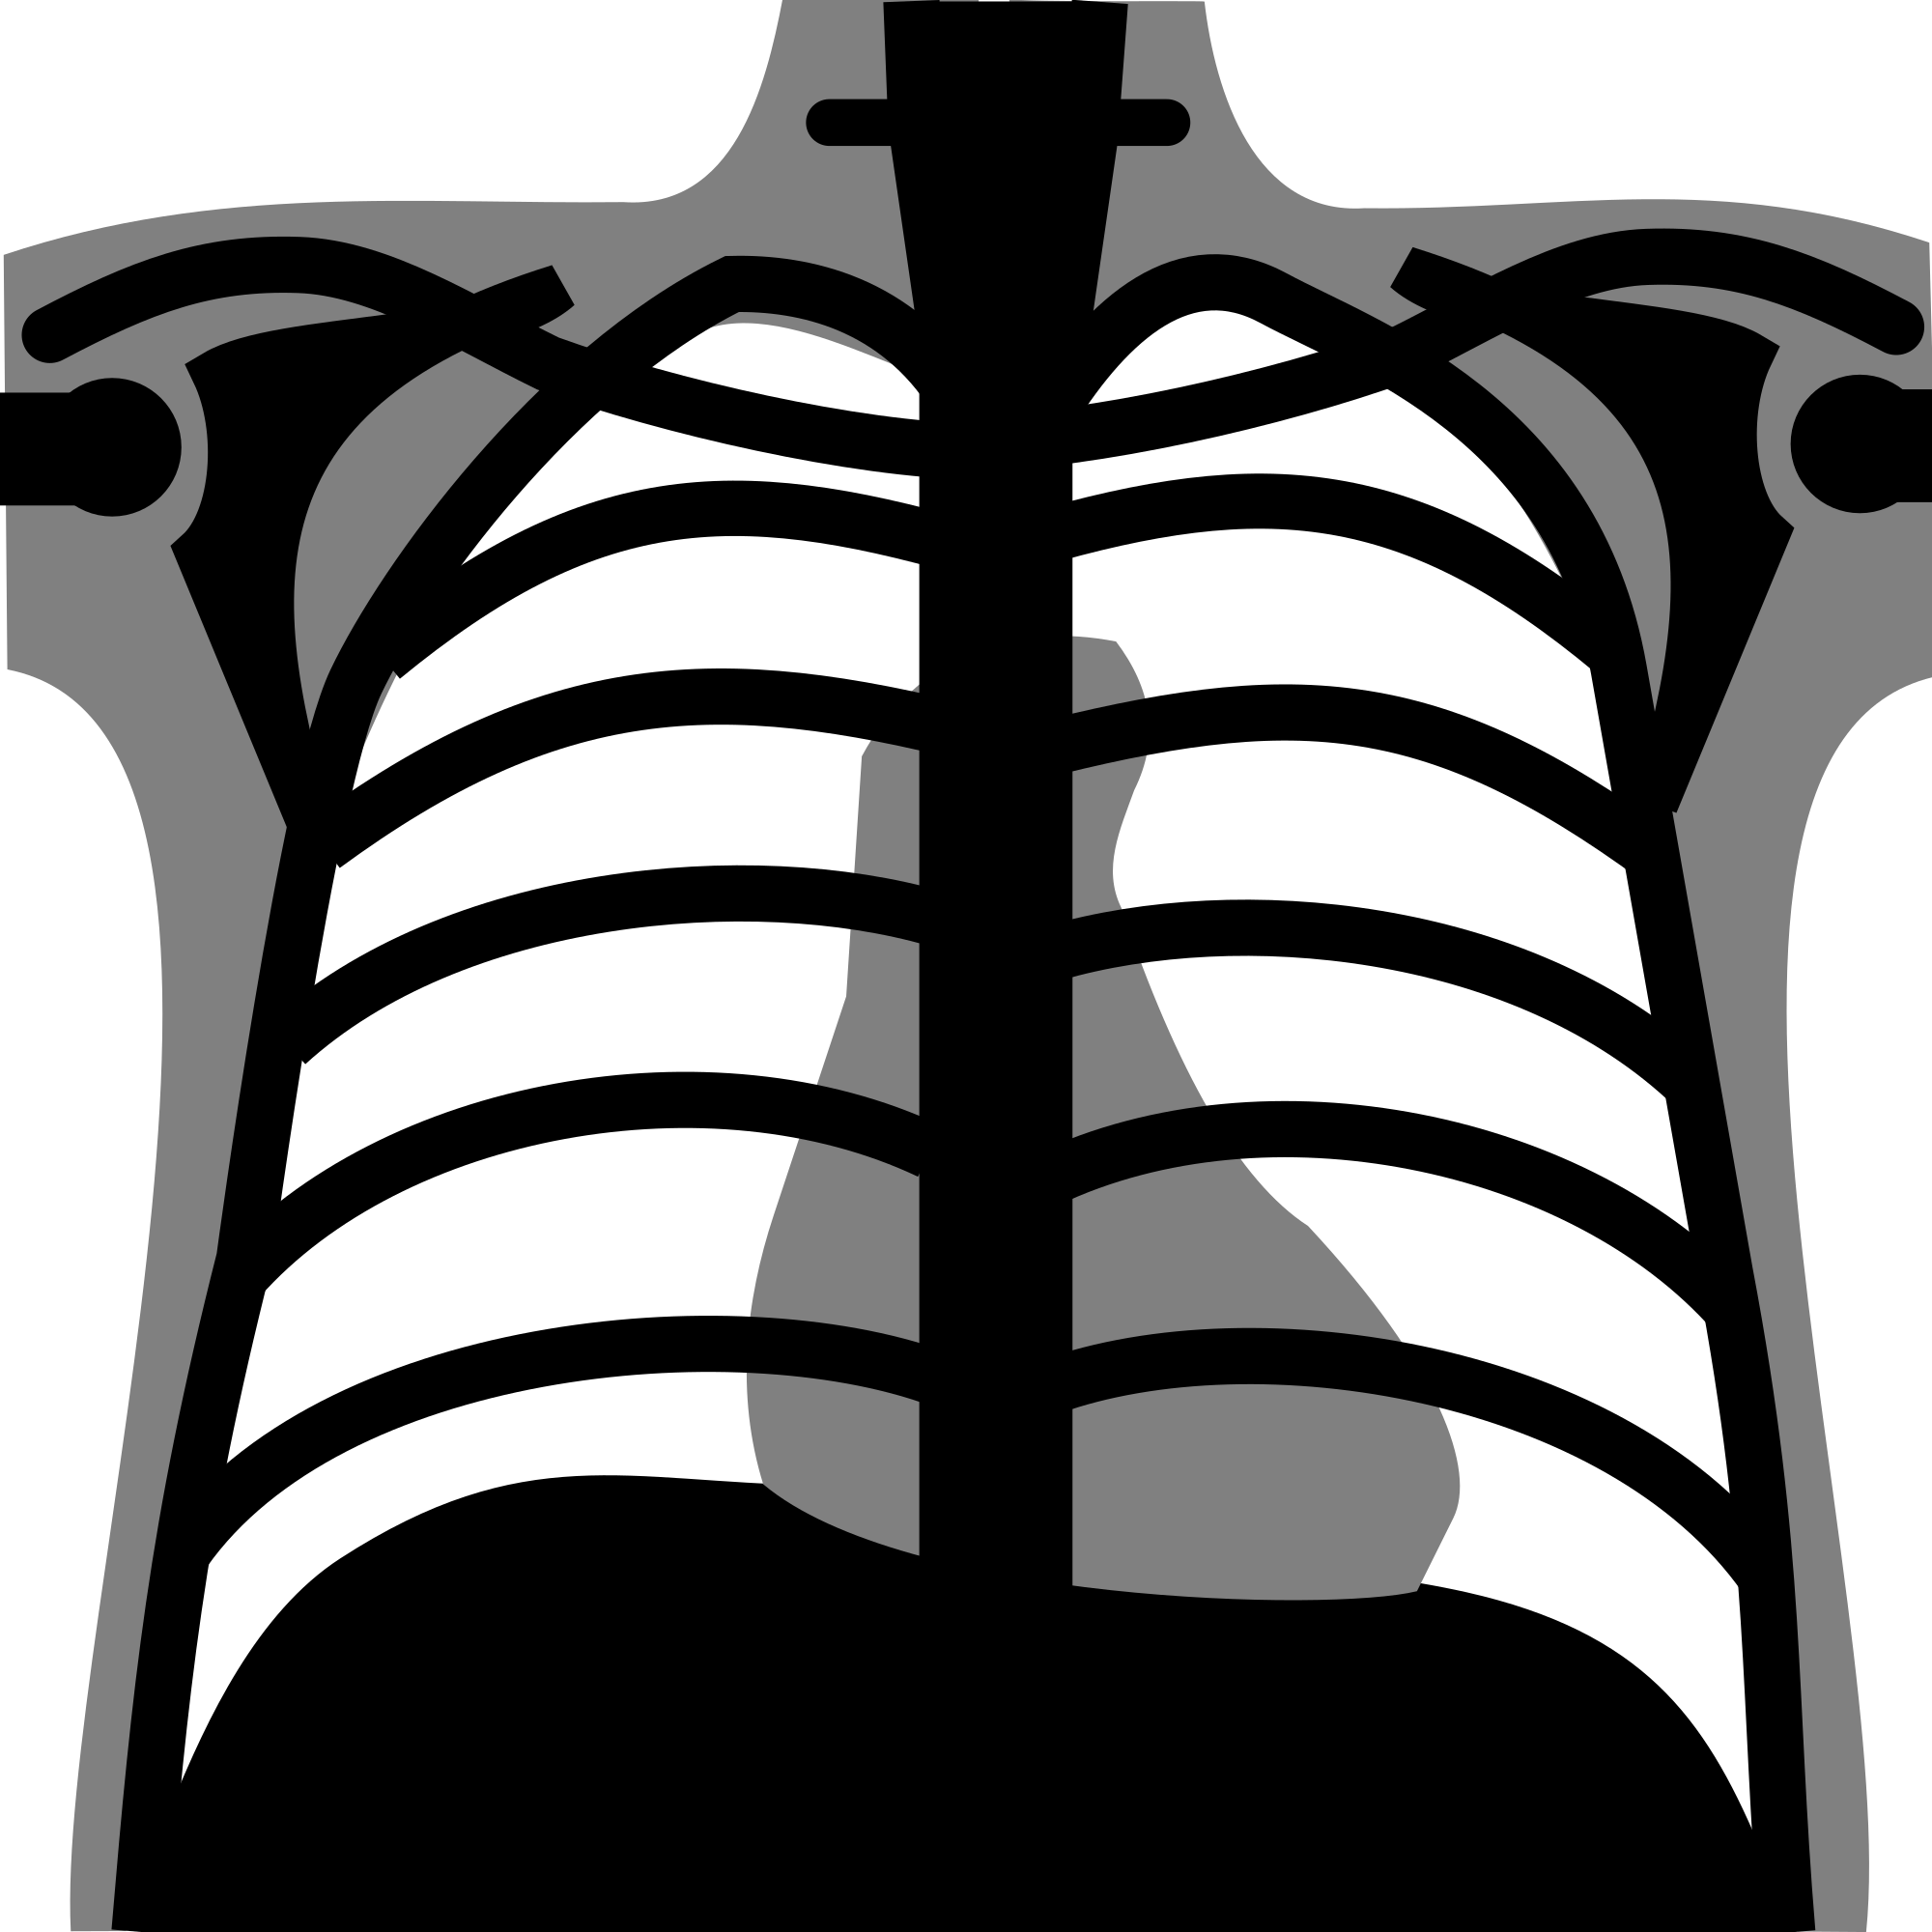 Xray drawing baby. Svg freeuse library